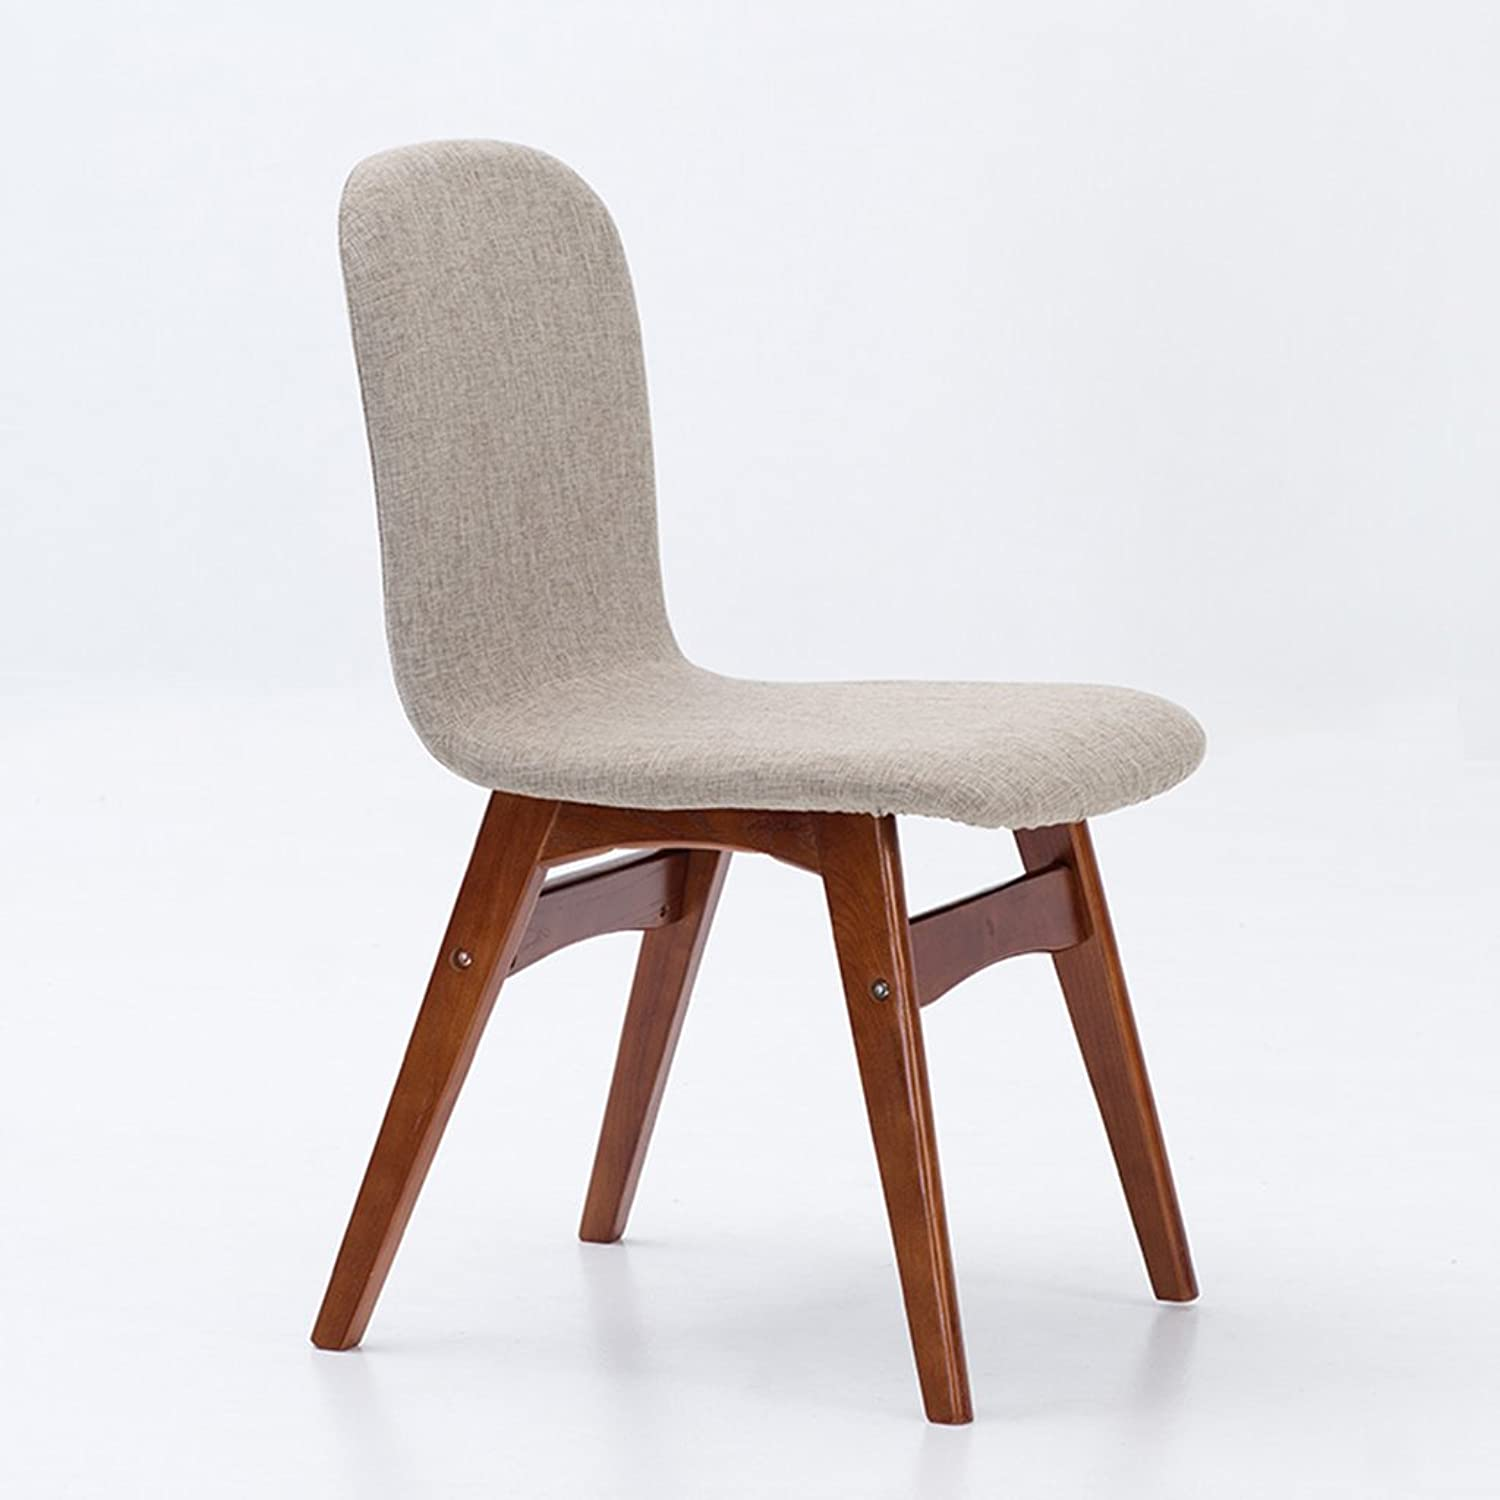 NNN- Nordic Residential Furniture Dining Chair Simple Modern Back Chair Coffee Lounge Chair Solid Wood Fabric Dining Table Chair, Red-Brown Stool Legs (color   E)